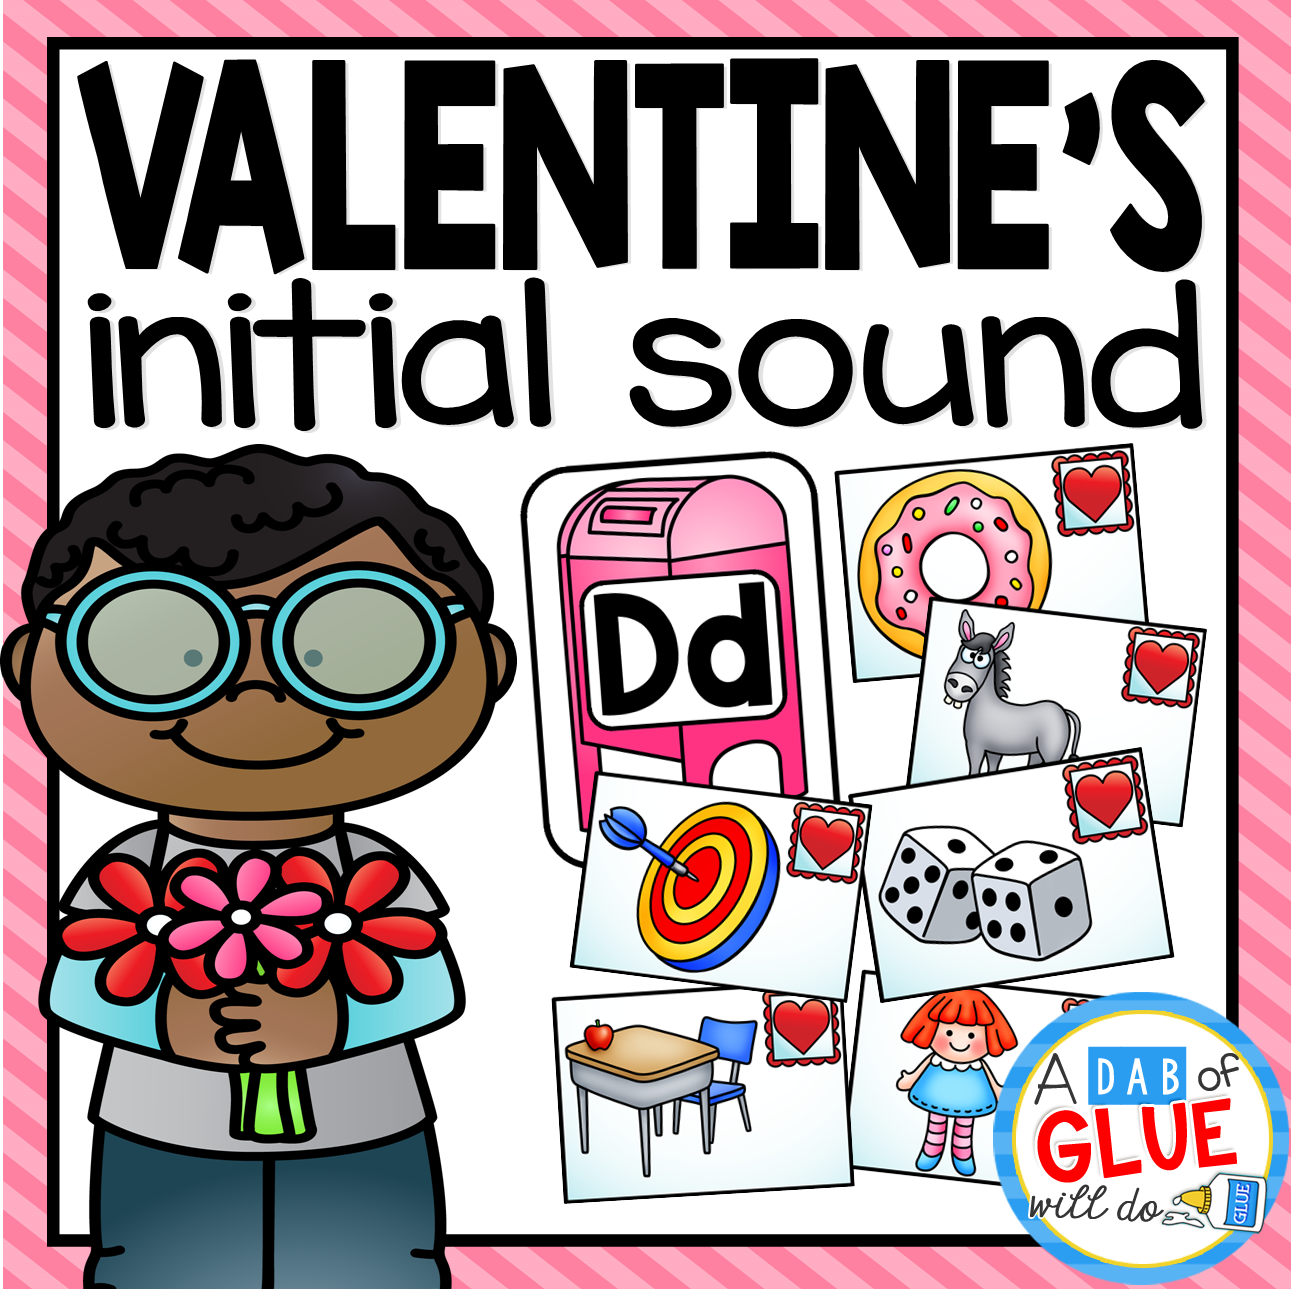 Valentine's Day Initial Sound Match-Up